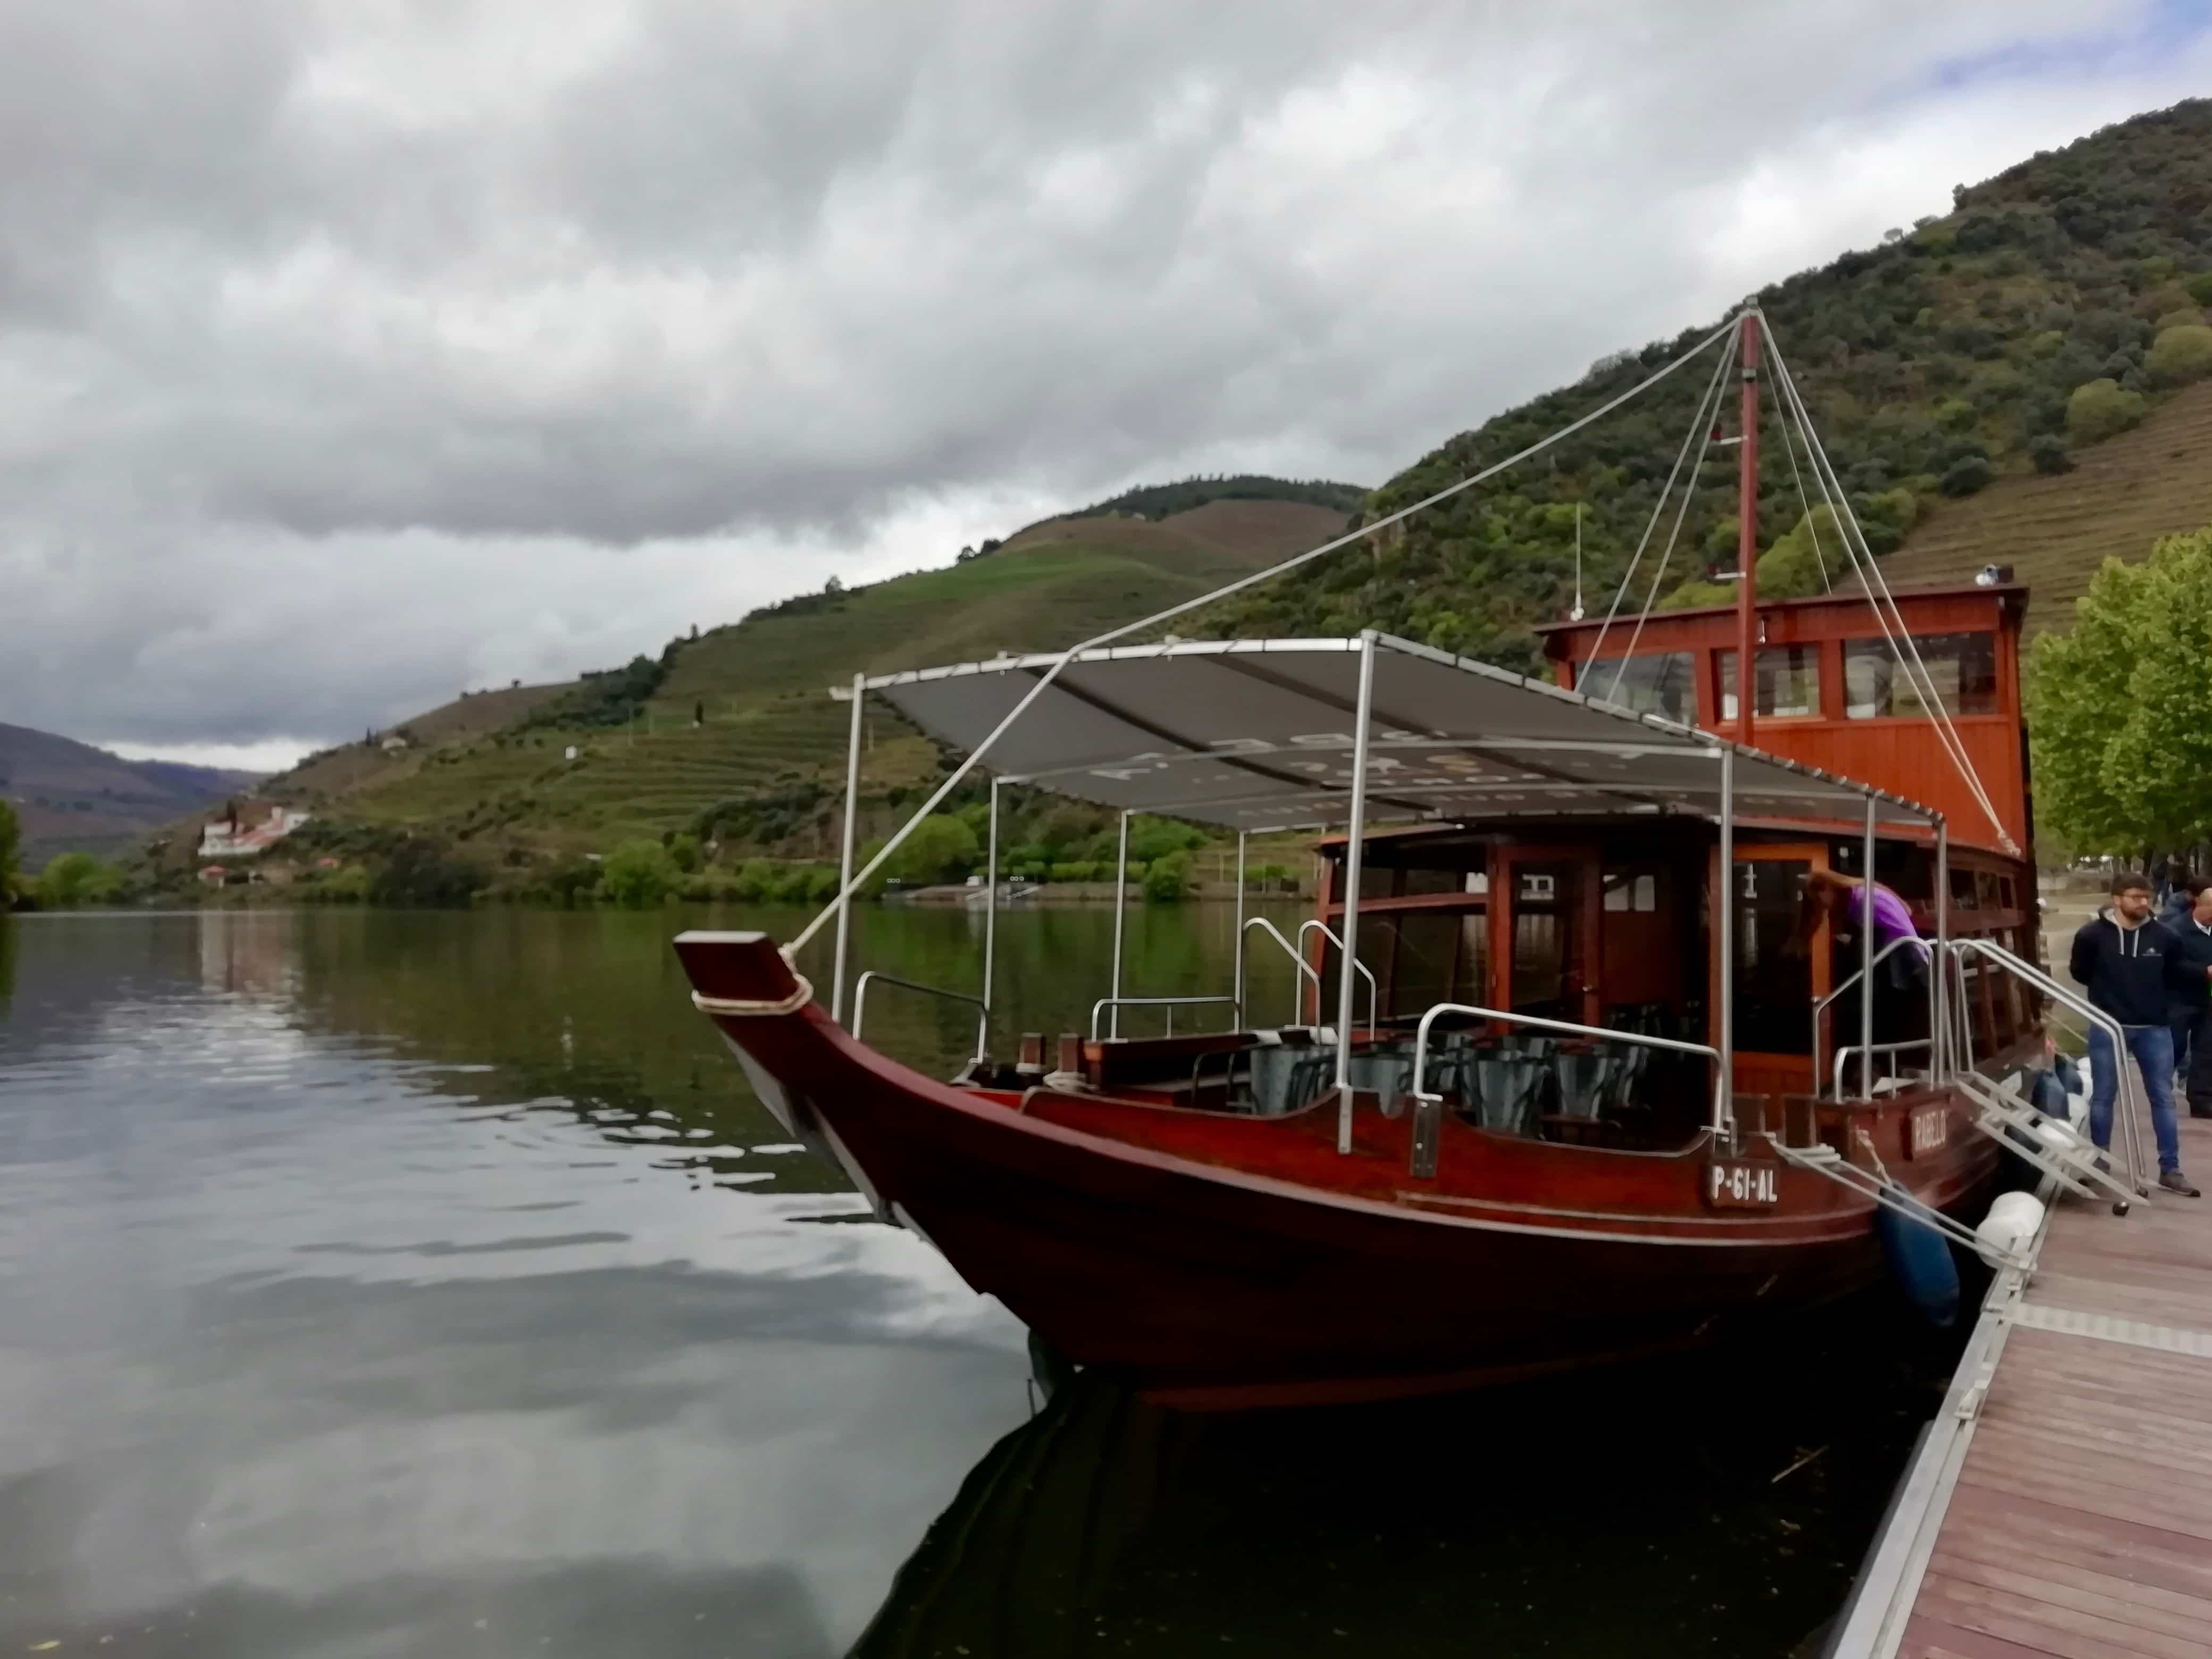 A traditional Rabelo boat on the Douro River in Portugal